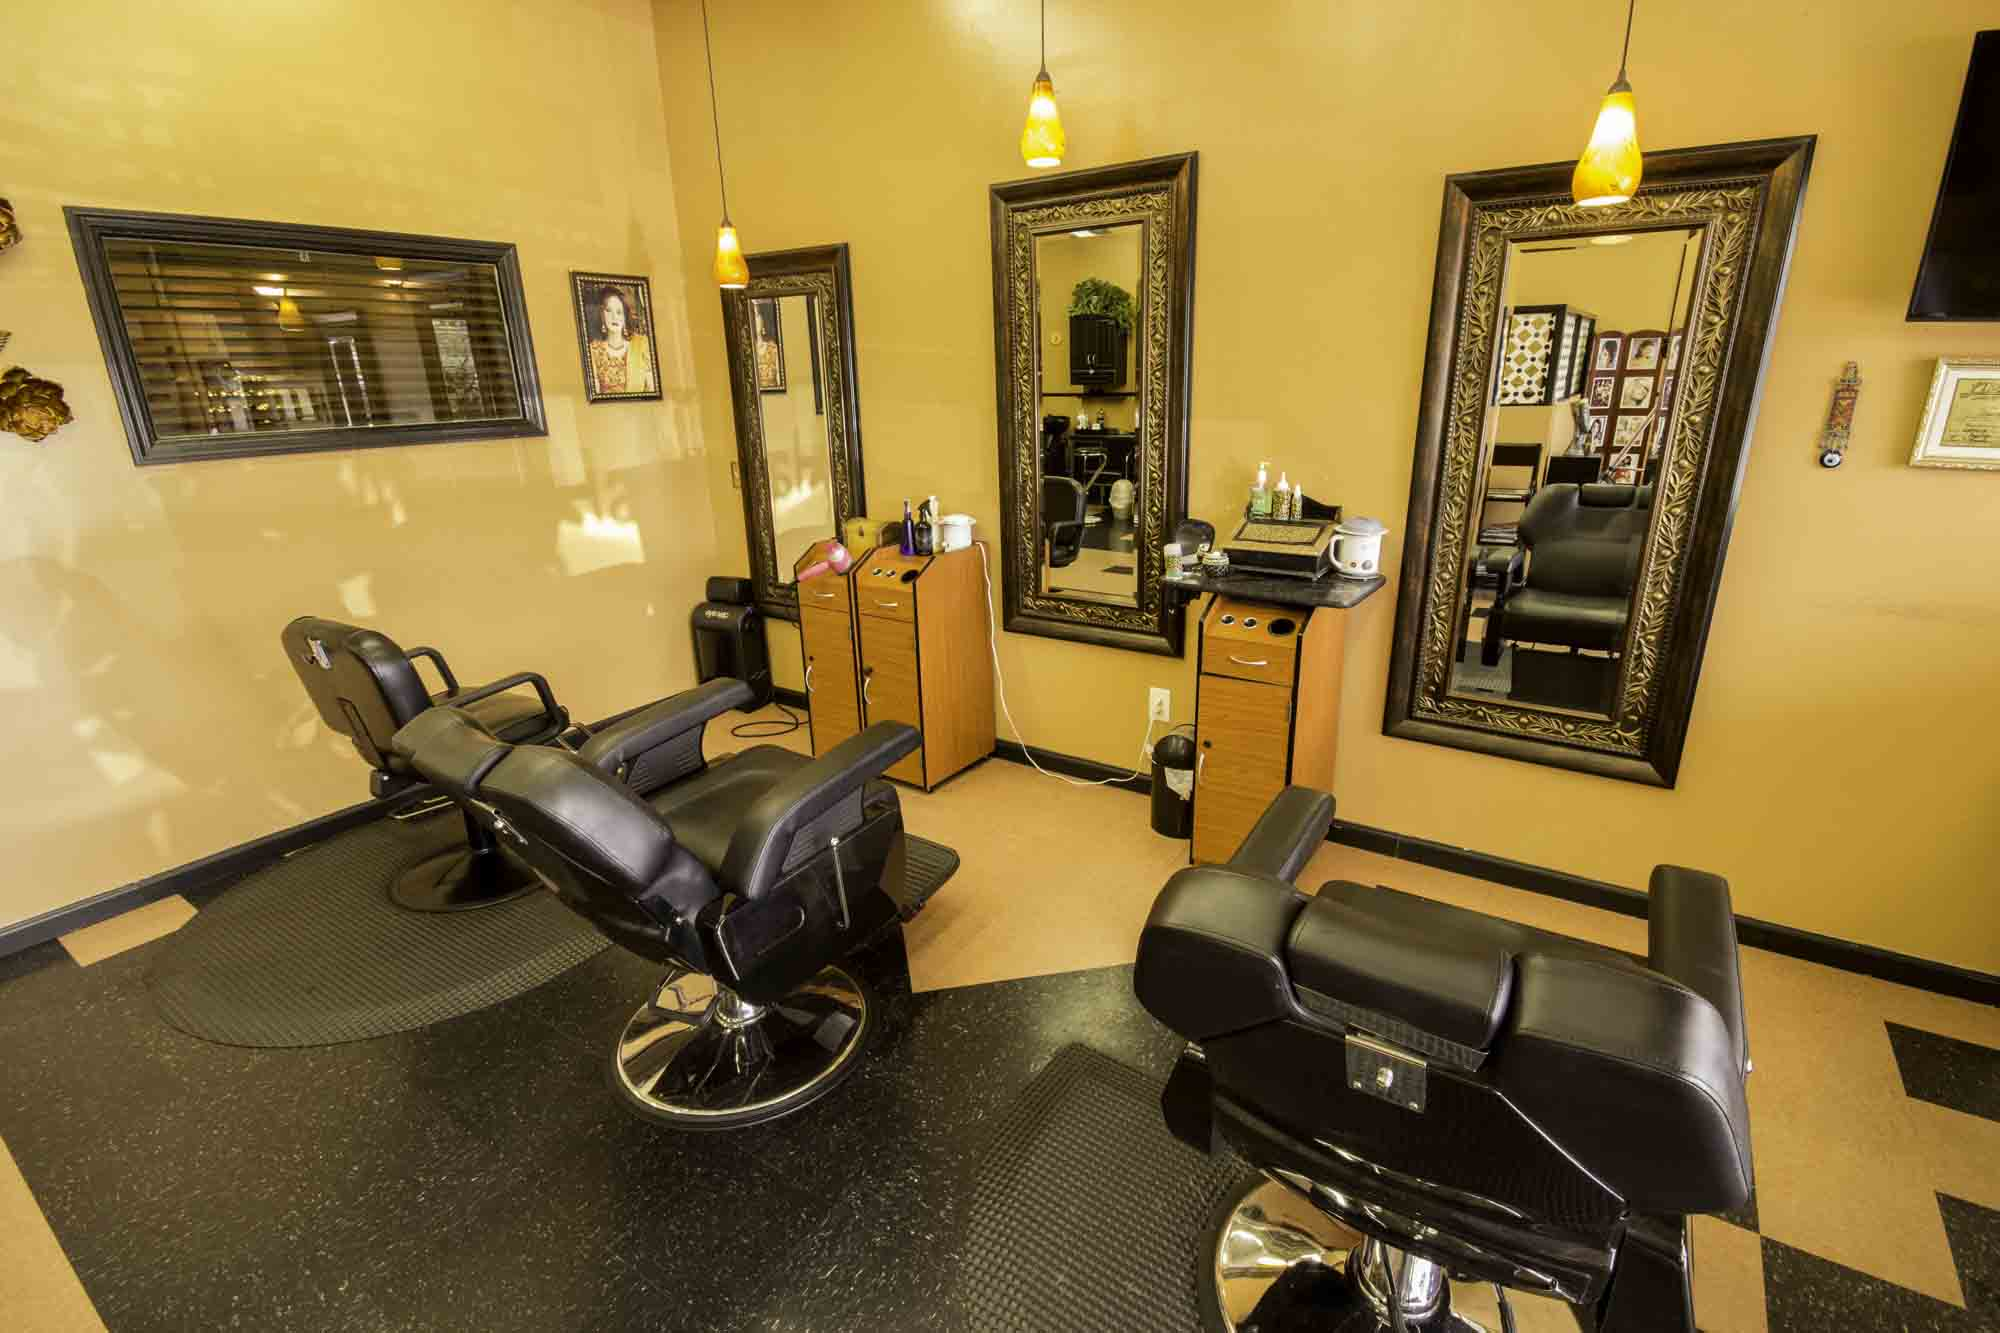 Beauty Salon Shamim 39s Jounrey Into Establishing Hair Spa And Beauty Salon